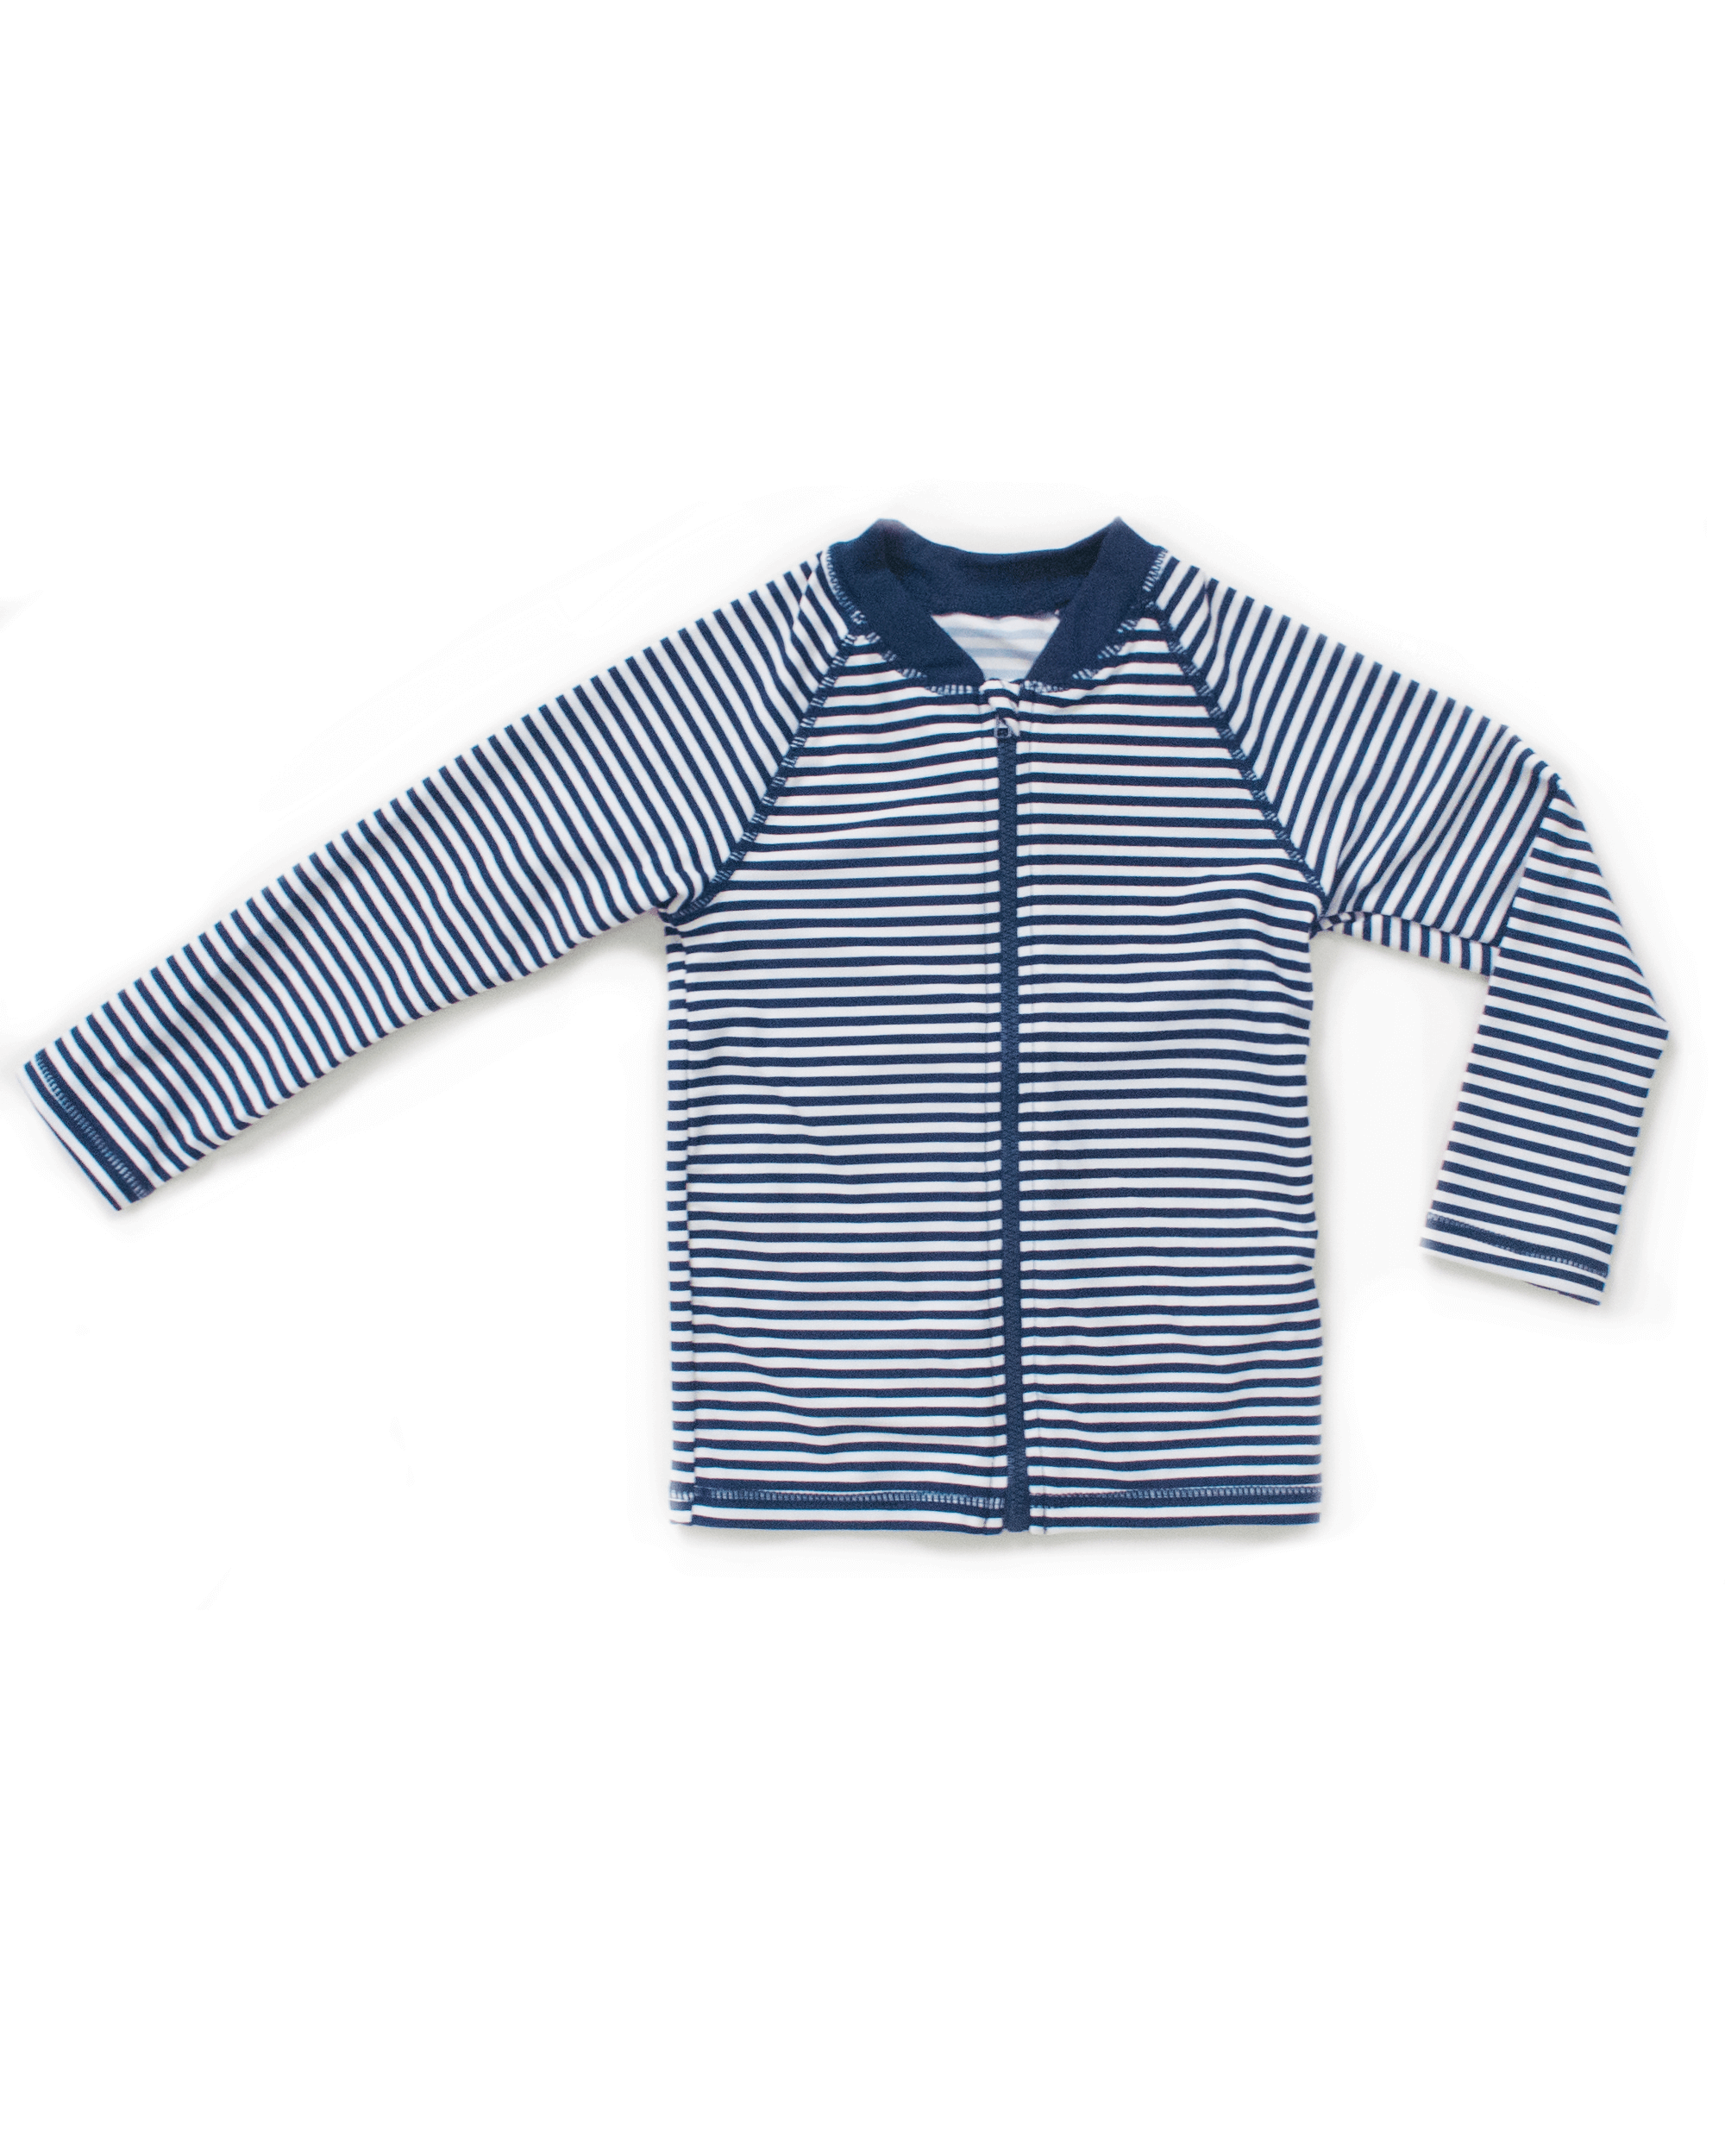 UPF50+ Junior Rash Top (Unisex) in Stripes